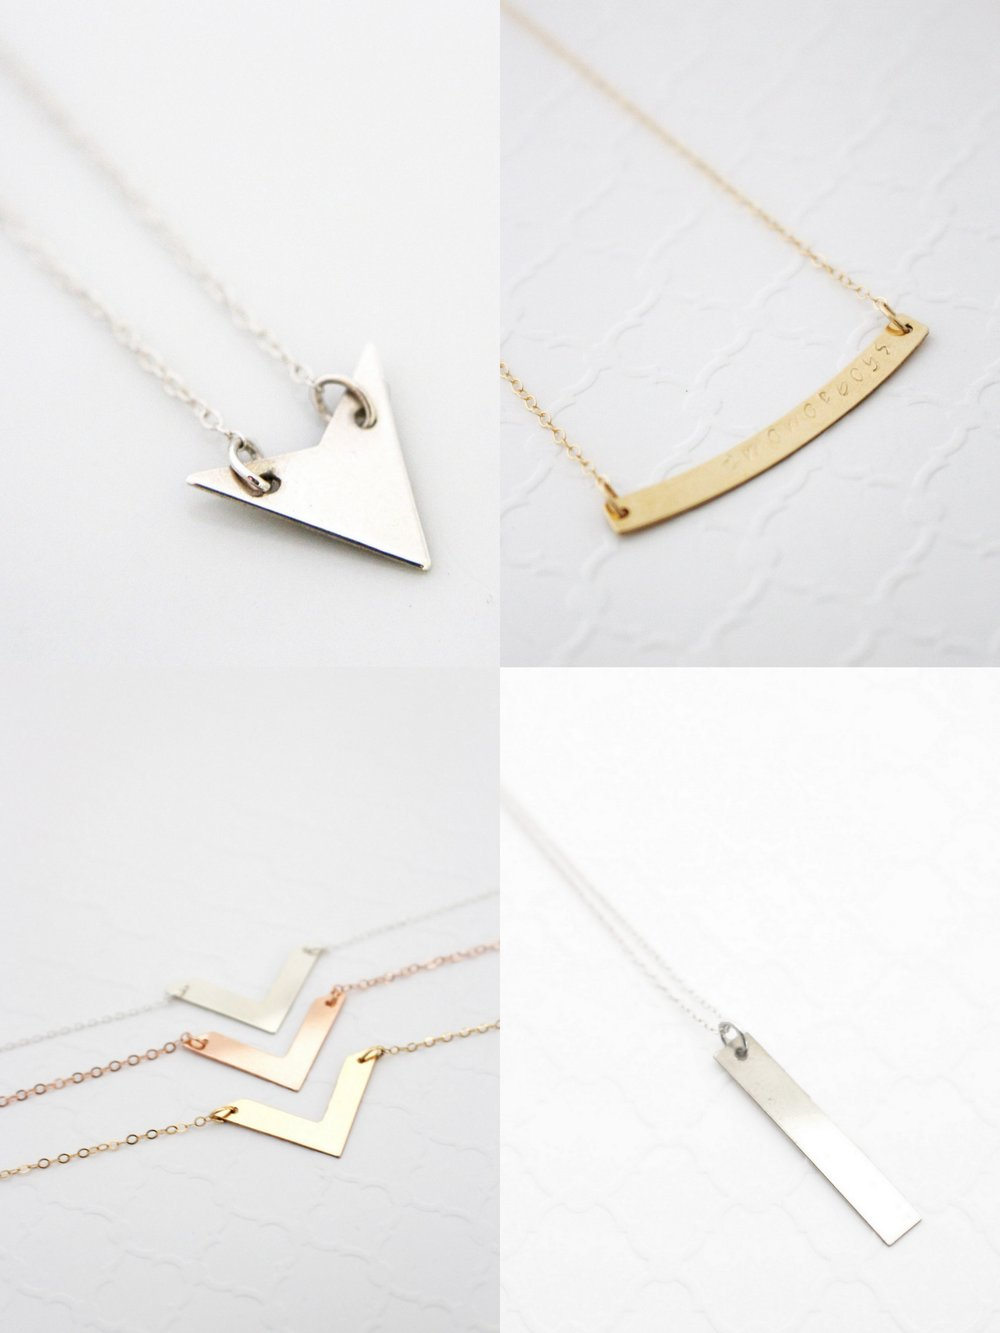 Arrow Necklace - Chevron Necklace - Vertical Bar Necklace - Curved Bar Necklace